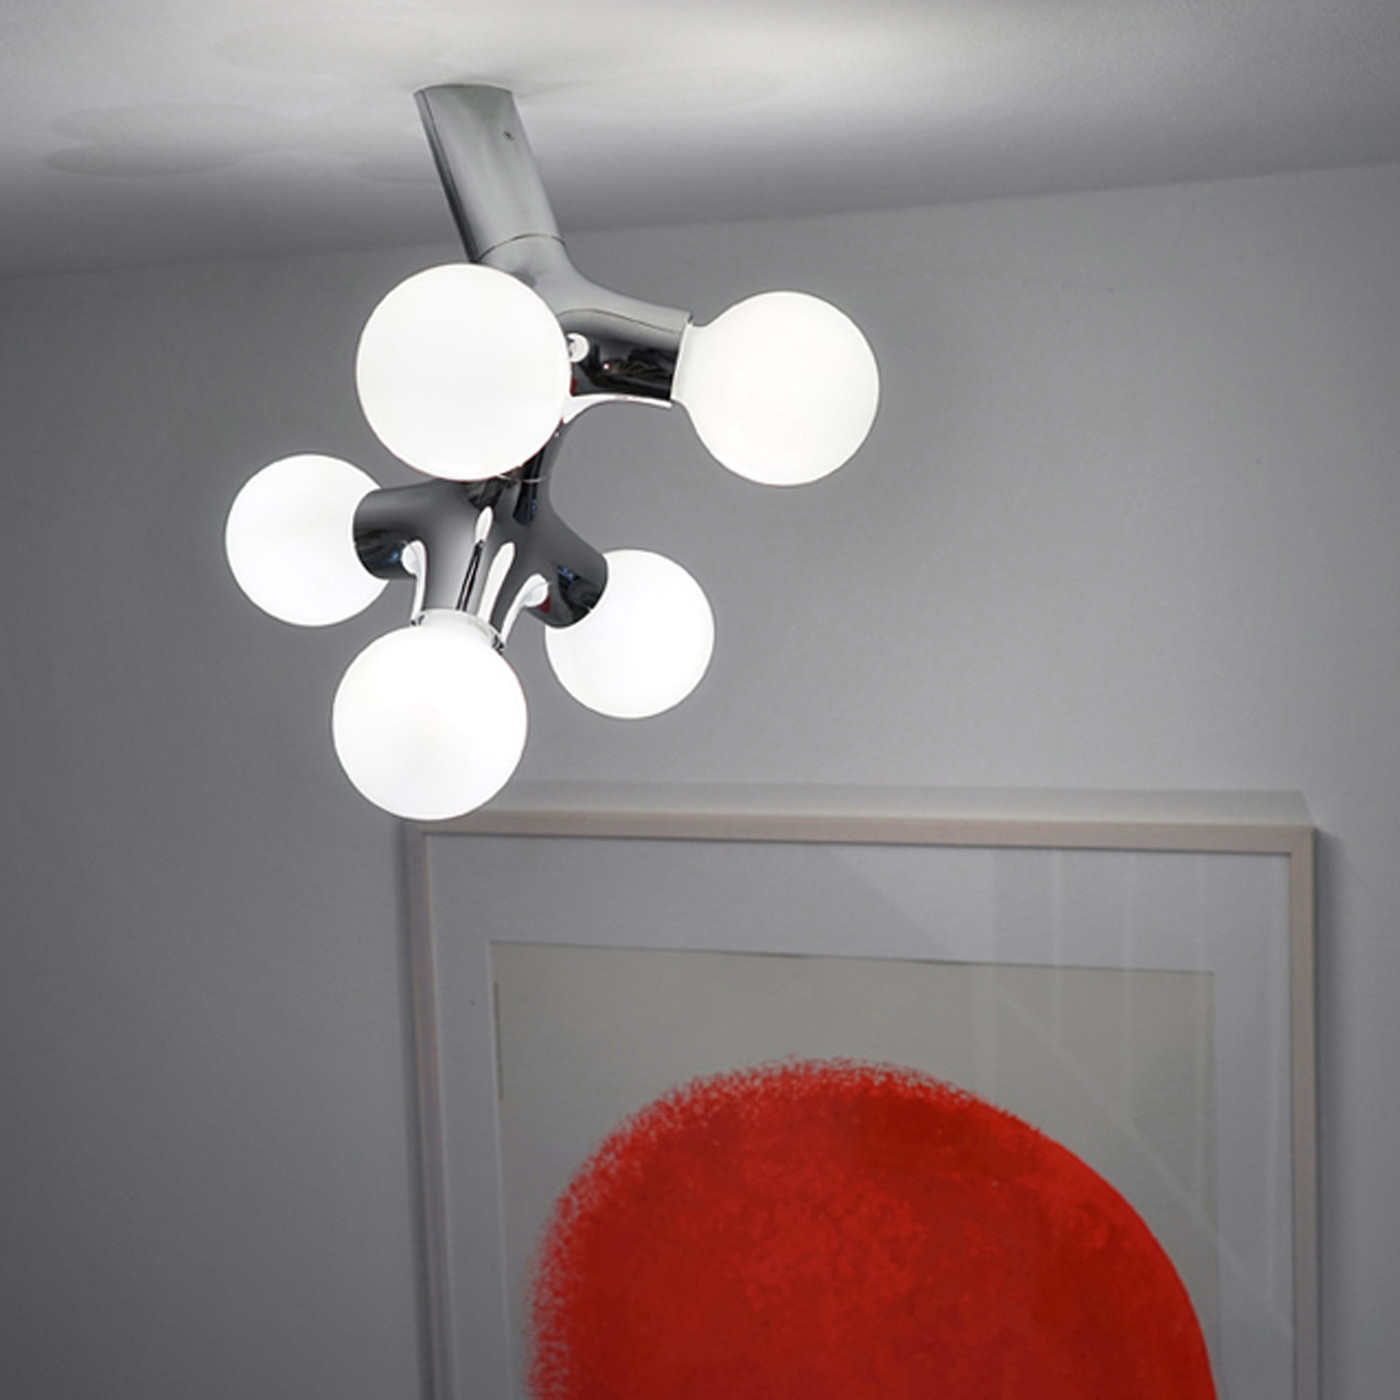 Next Dna Double Wall Ceiling Light At Nostraforma